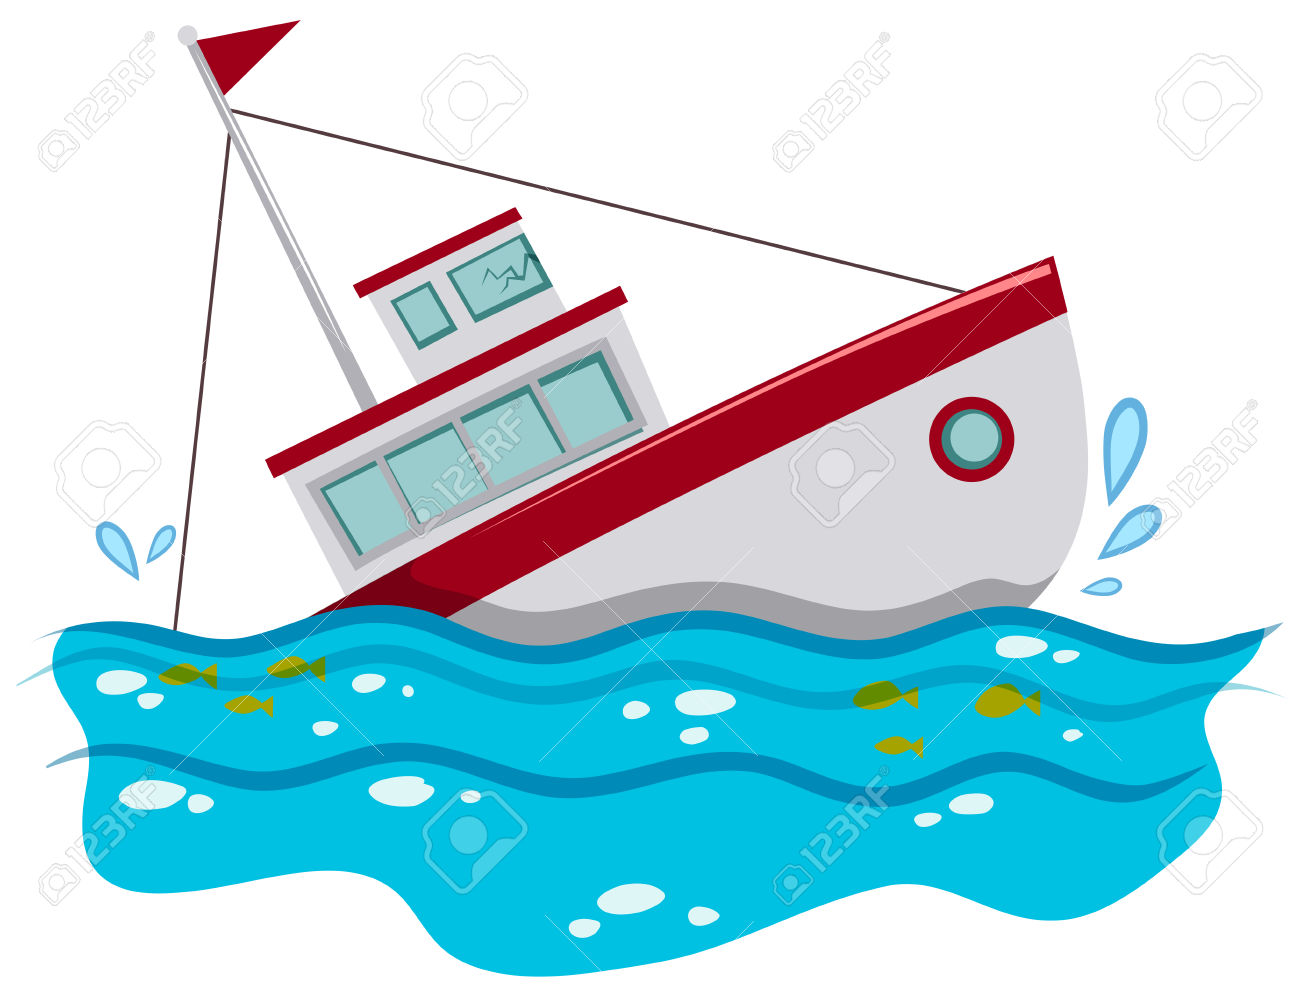 sinking ship clipart - Clipground